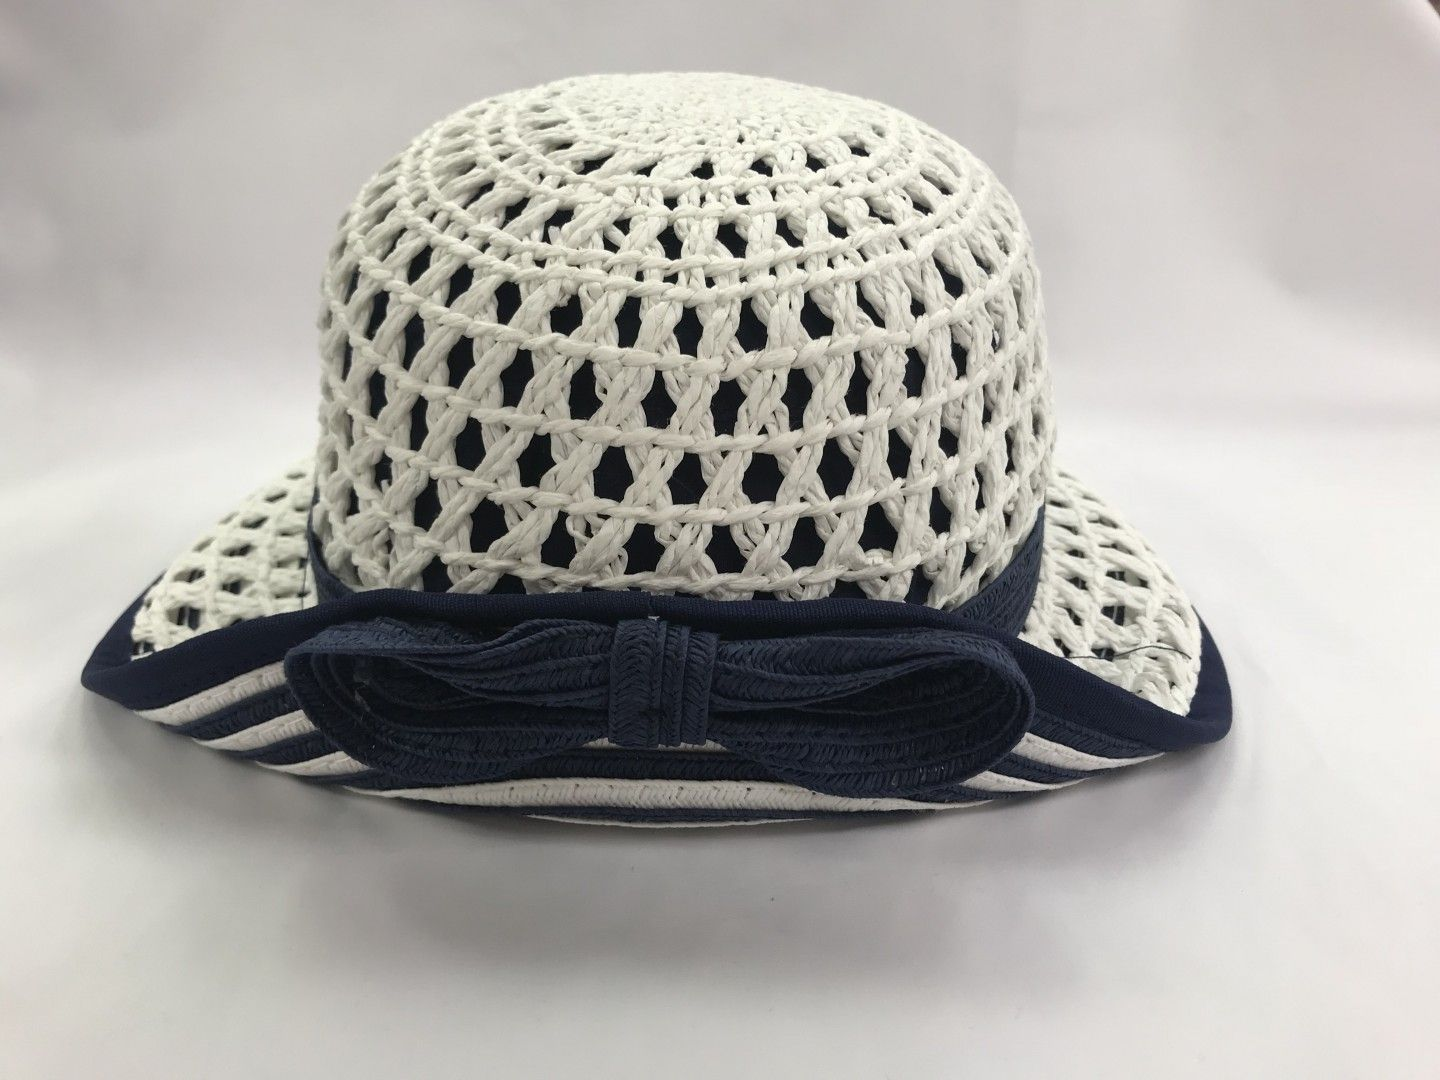 MAYORAL NAVY AND WHITE WOVEN HAT SIZES SMALL-LARGE